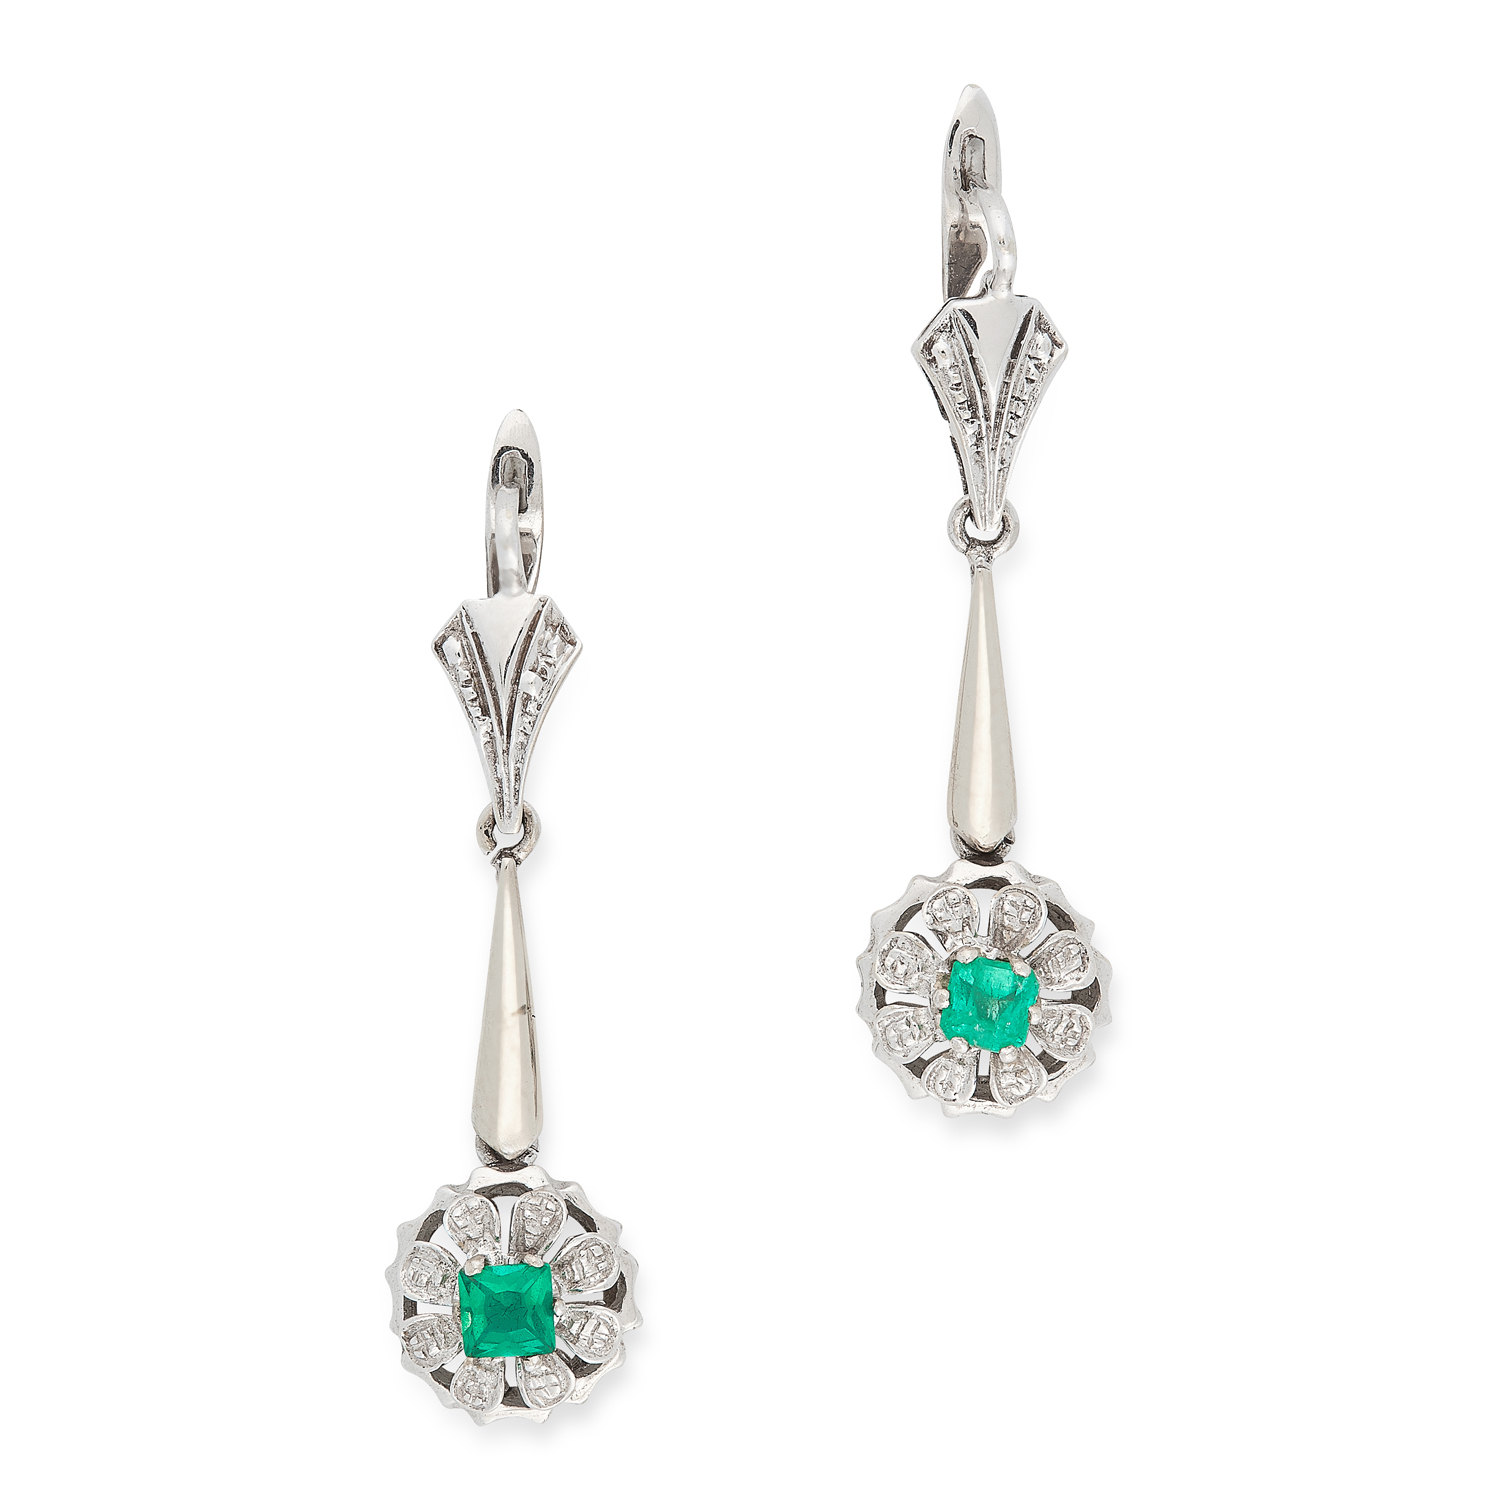 A PAIR OF EMERALD DROP EARRINGS each formed of a b